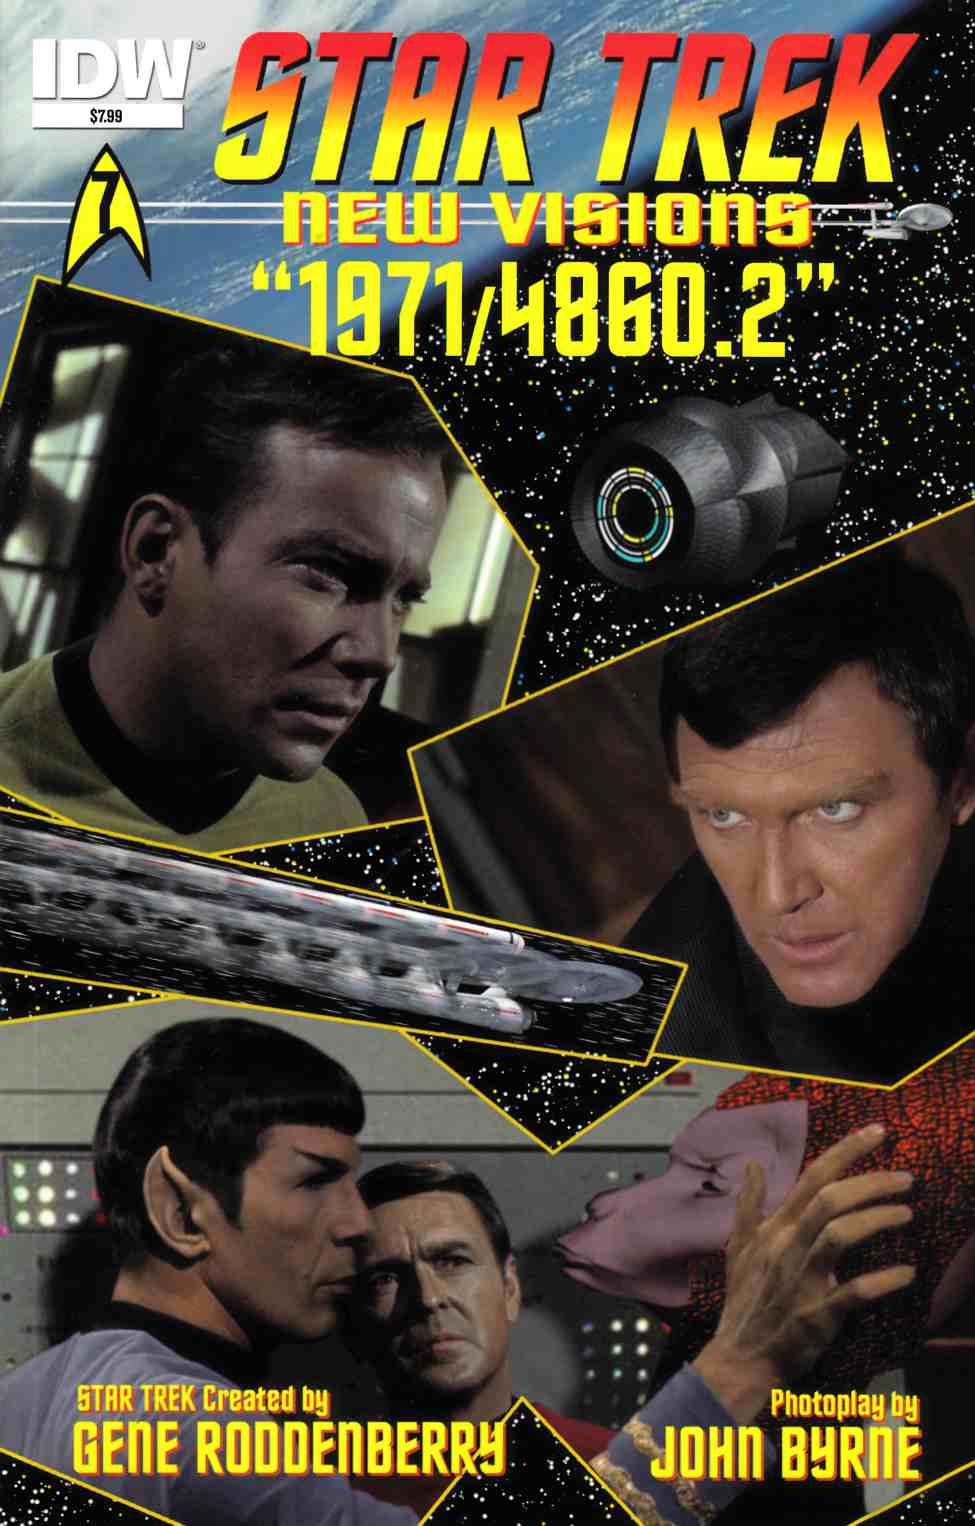 Star Trek New Visions 1971 48602 (One Shot) [IDW Comic] THUMBNAIL